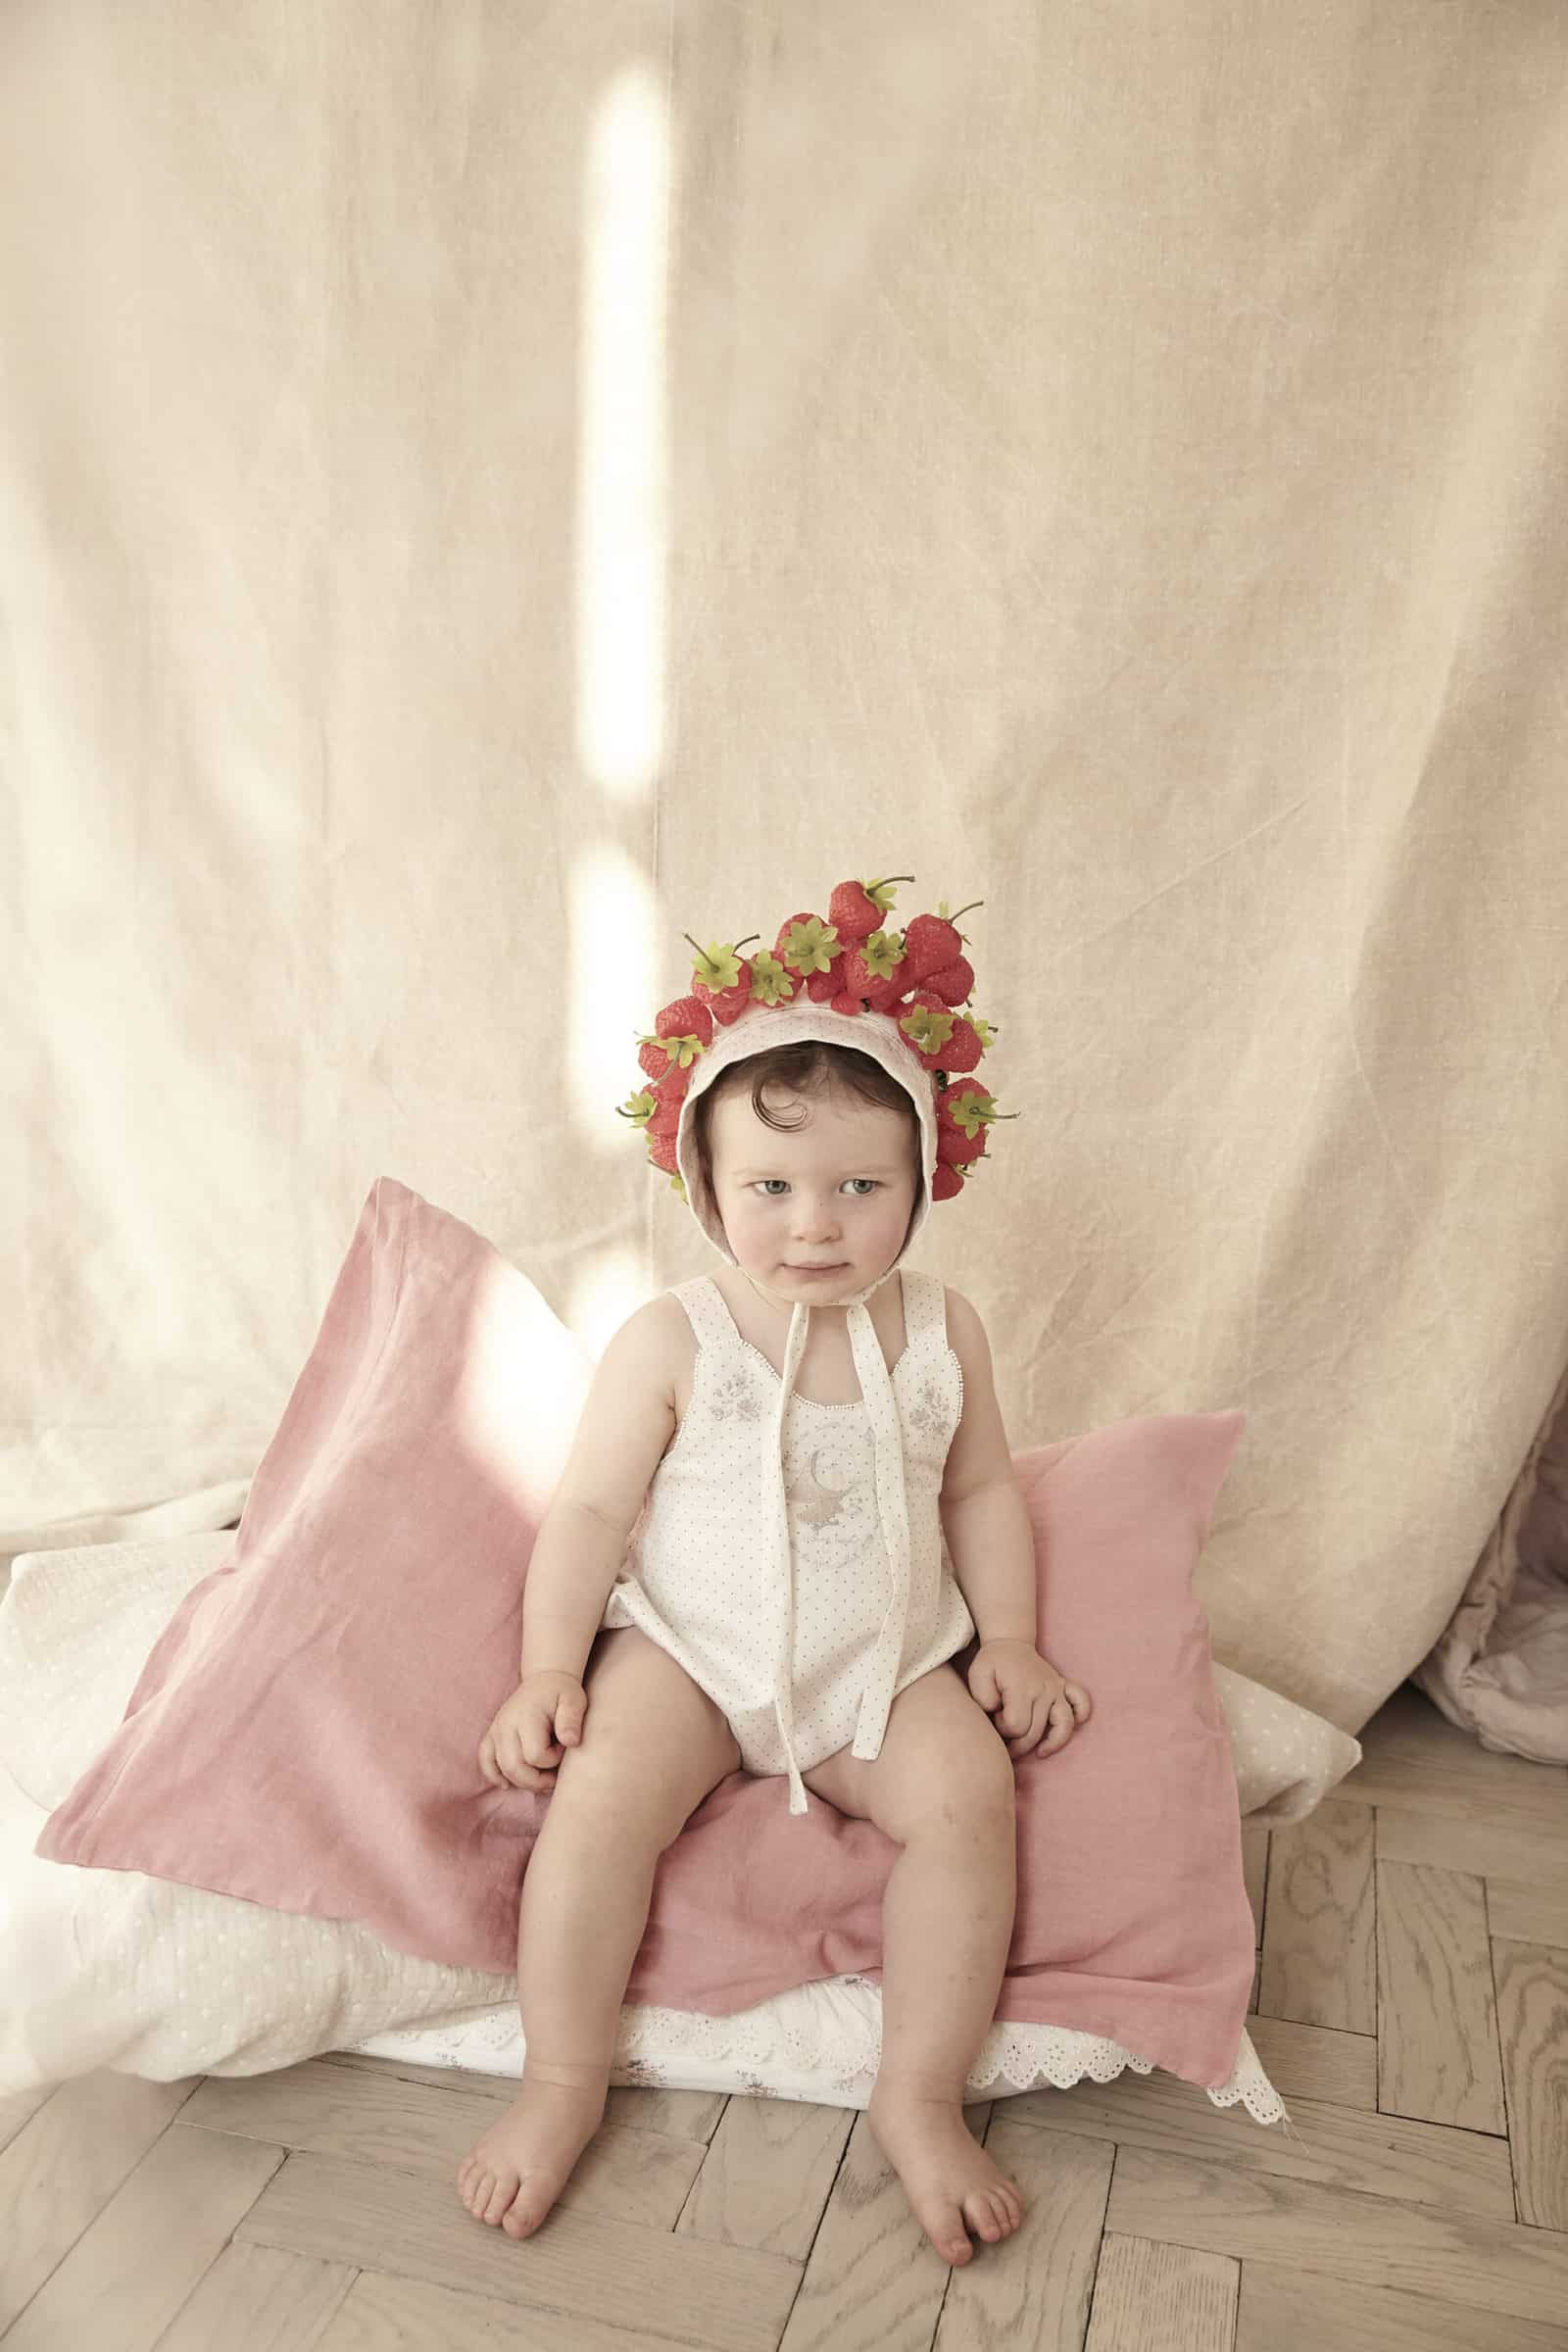 Strawberries and Cream is a luxury British baby and girlswear brand SS21